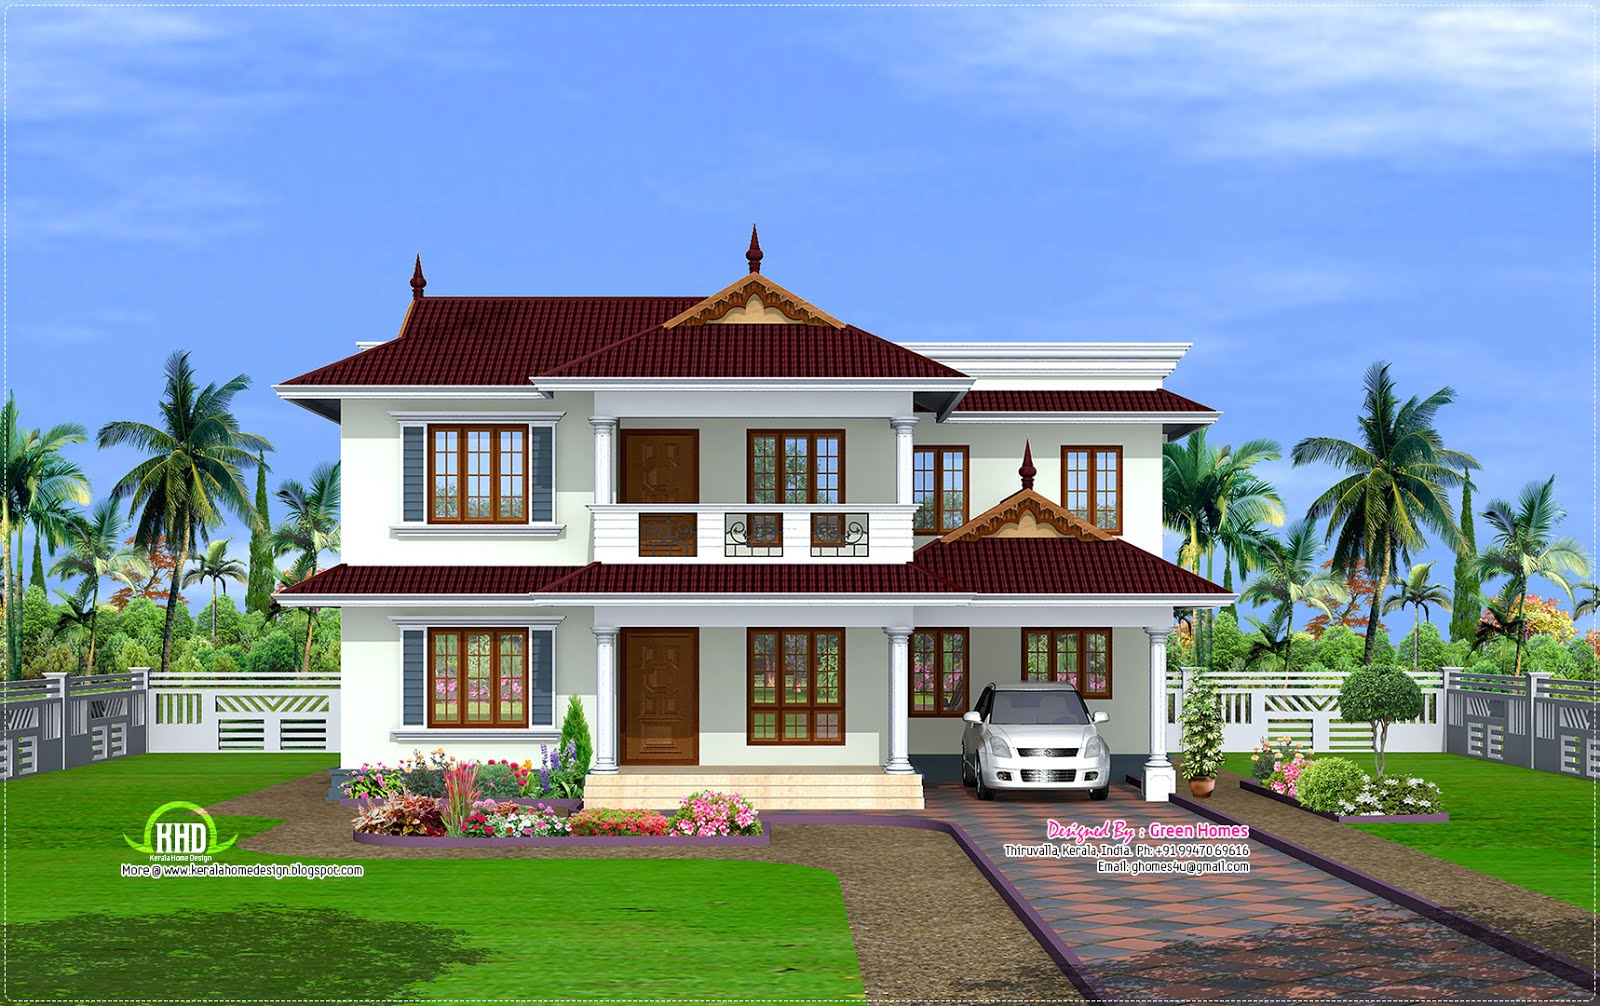 2600 kerala model house house design plans for Homes models and plans